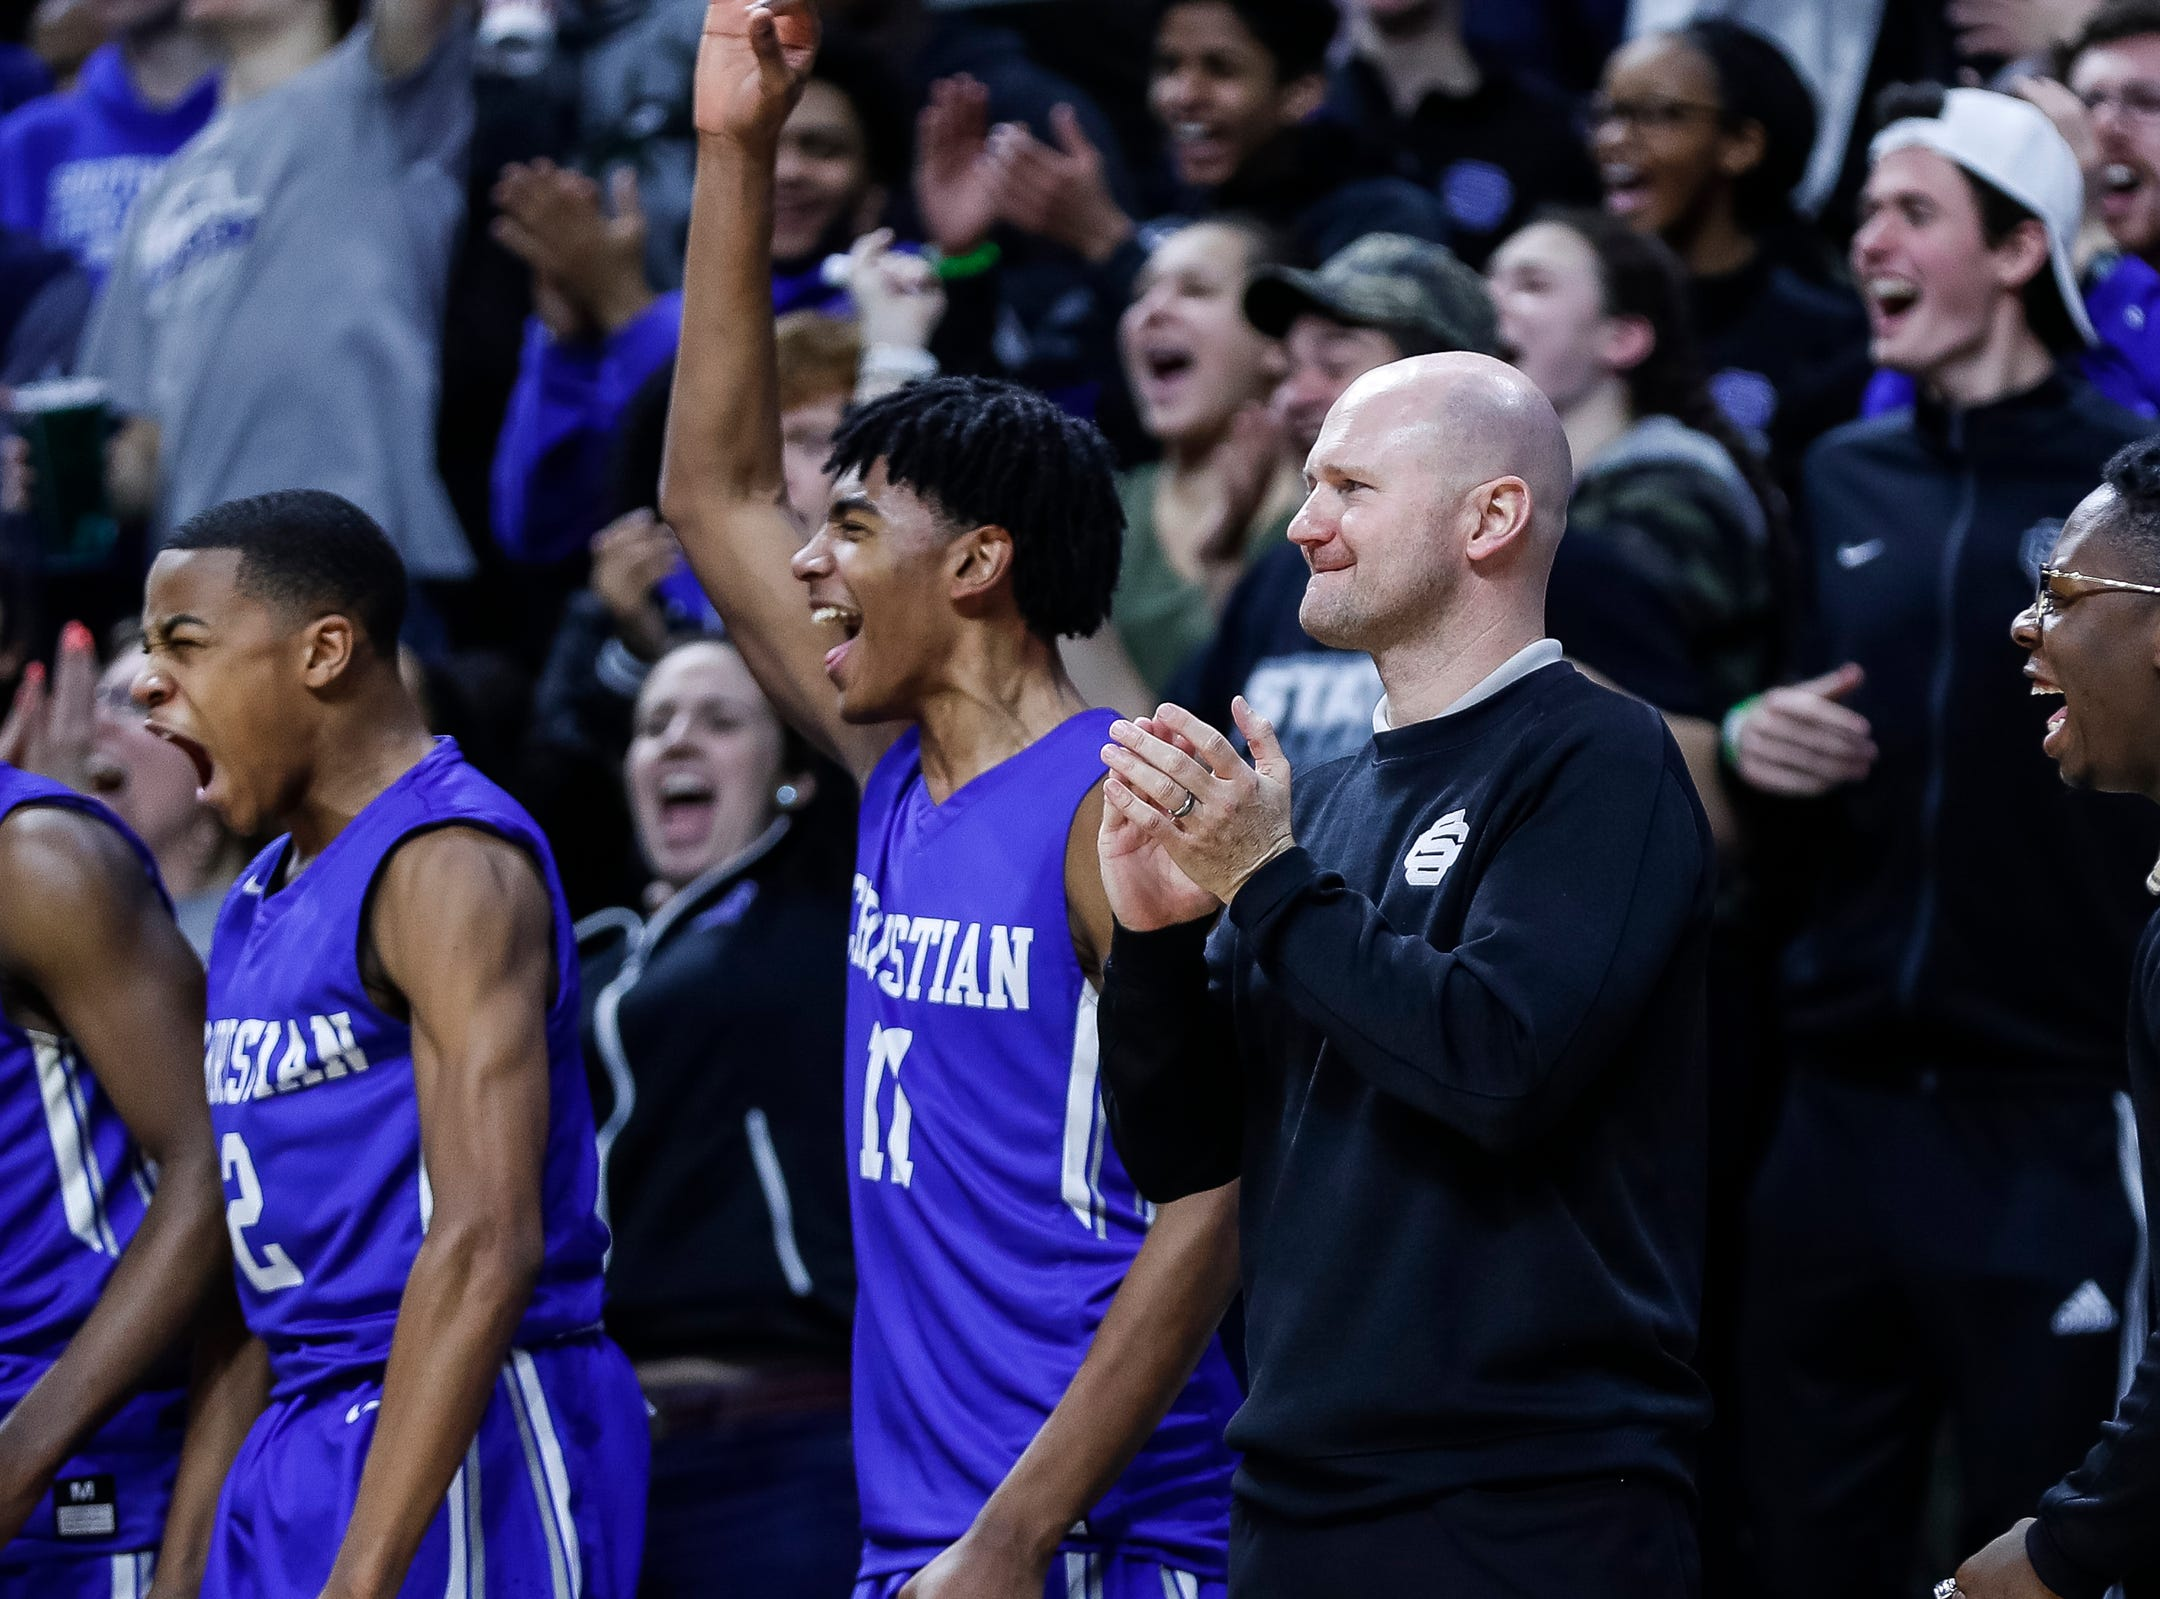 Southfield Christian head coach Josh Baker and the bench cheer for their teammates during the second half of MHSAA Division 4 semifinal against Dollar Bay at the Breslin Center in East Lansing, Thursday, March 14, 2019.